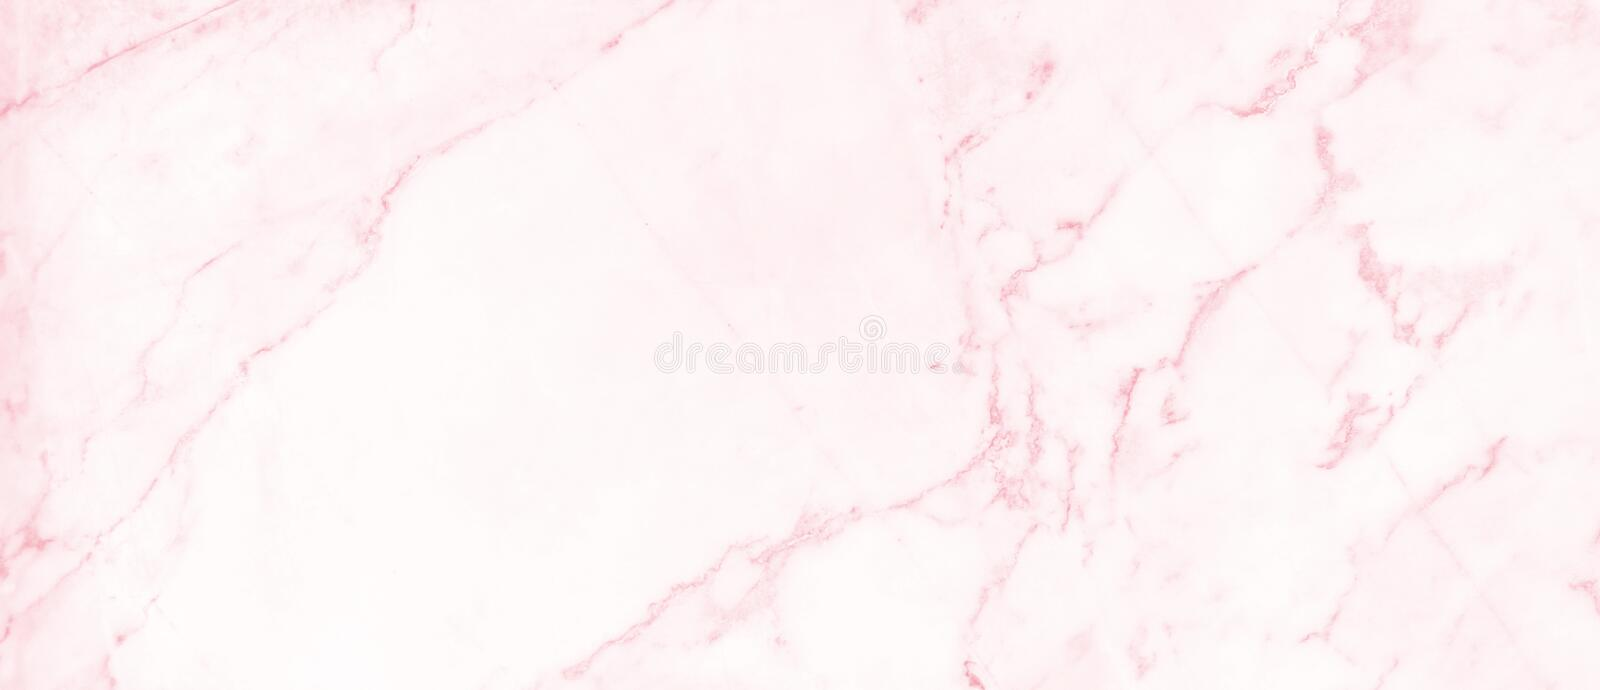 Pink marble texture background, abstract marble texture. royalty free stock image